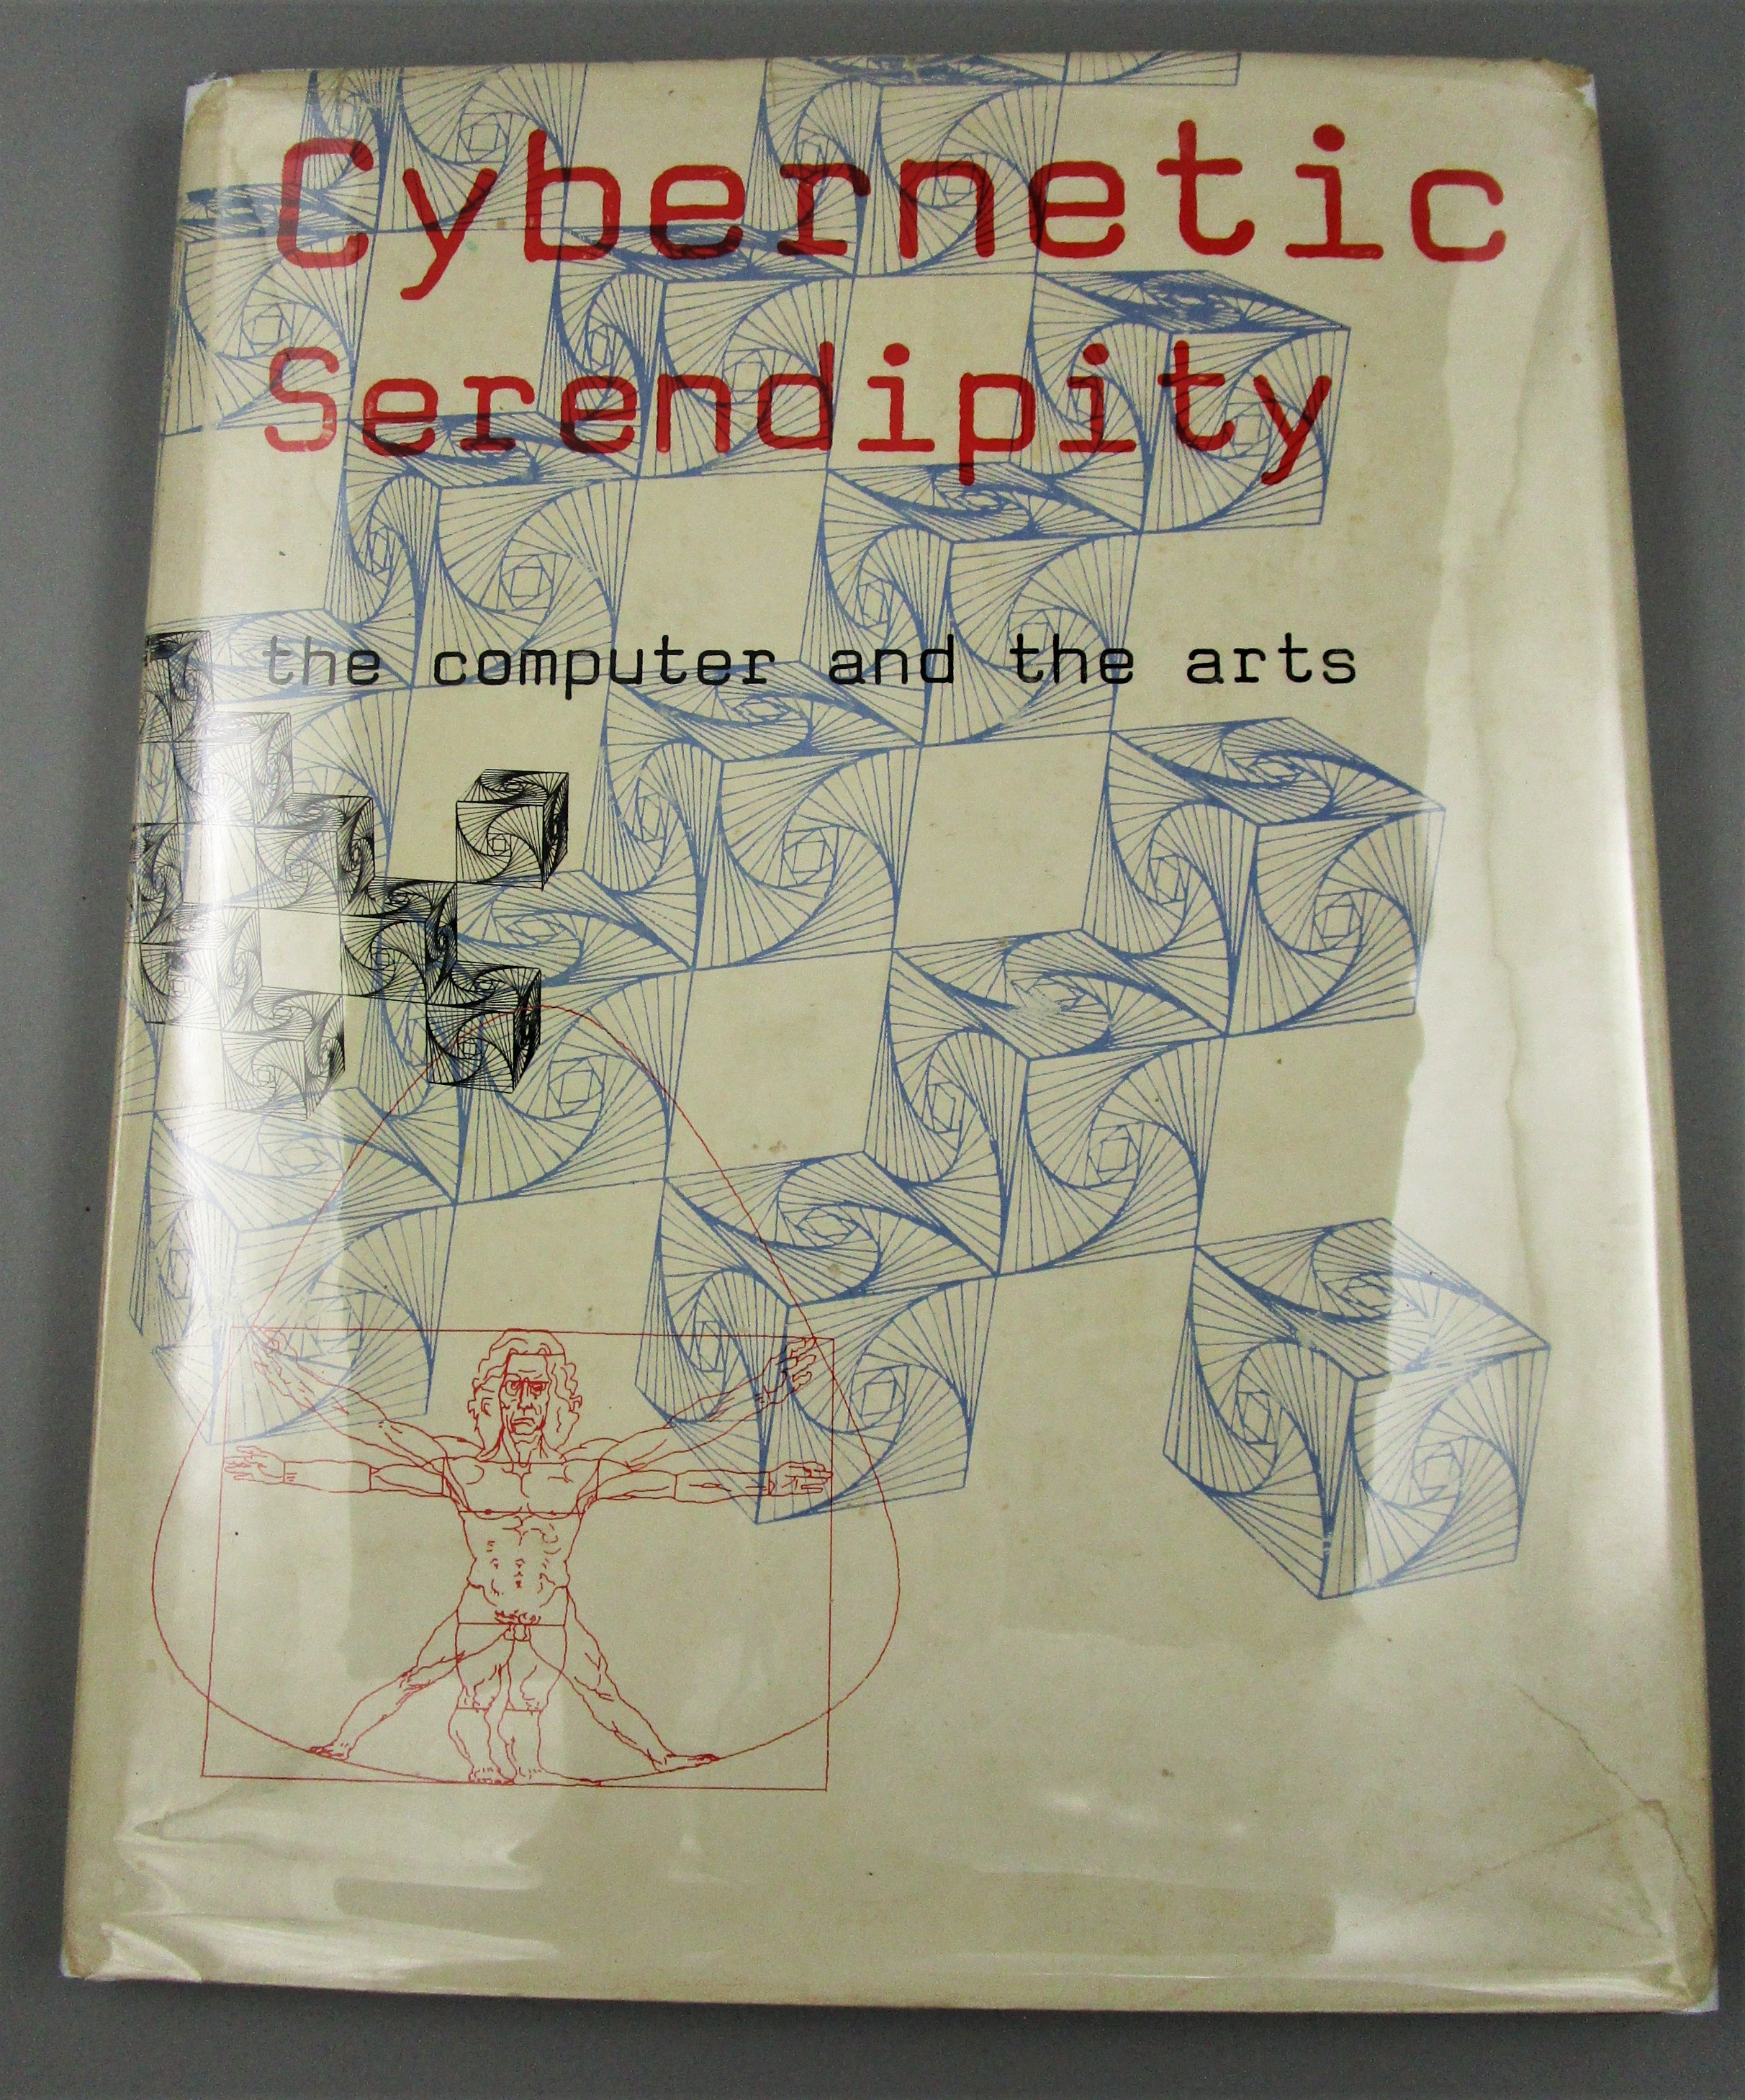 CYBERNETIC SERENDIPITY, by Jasia Reichardt - 1969